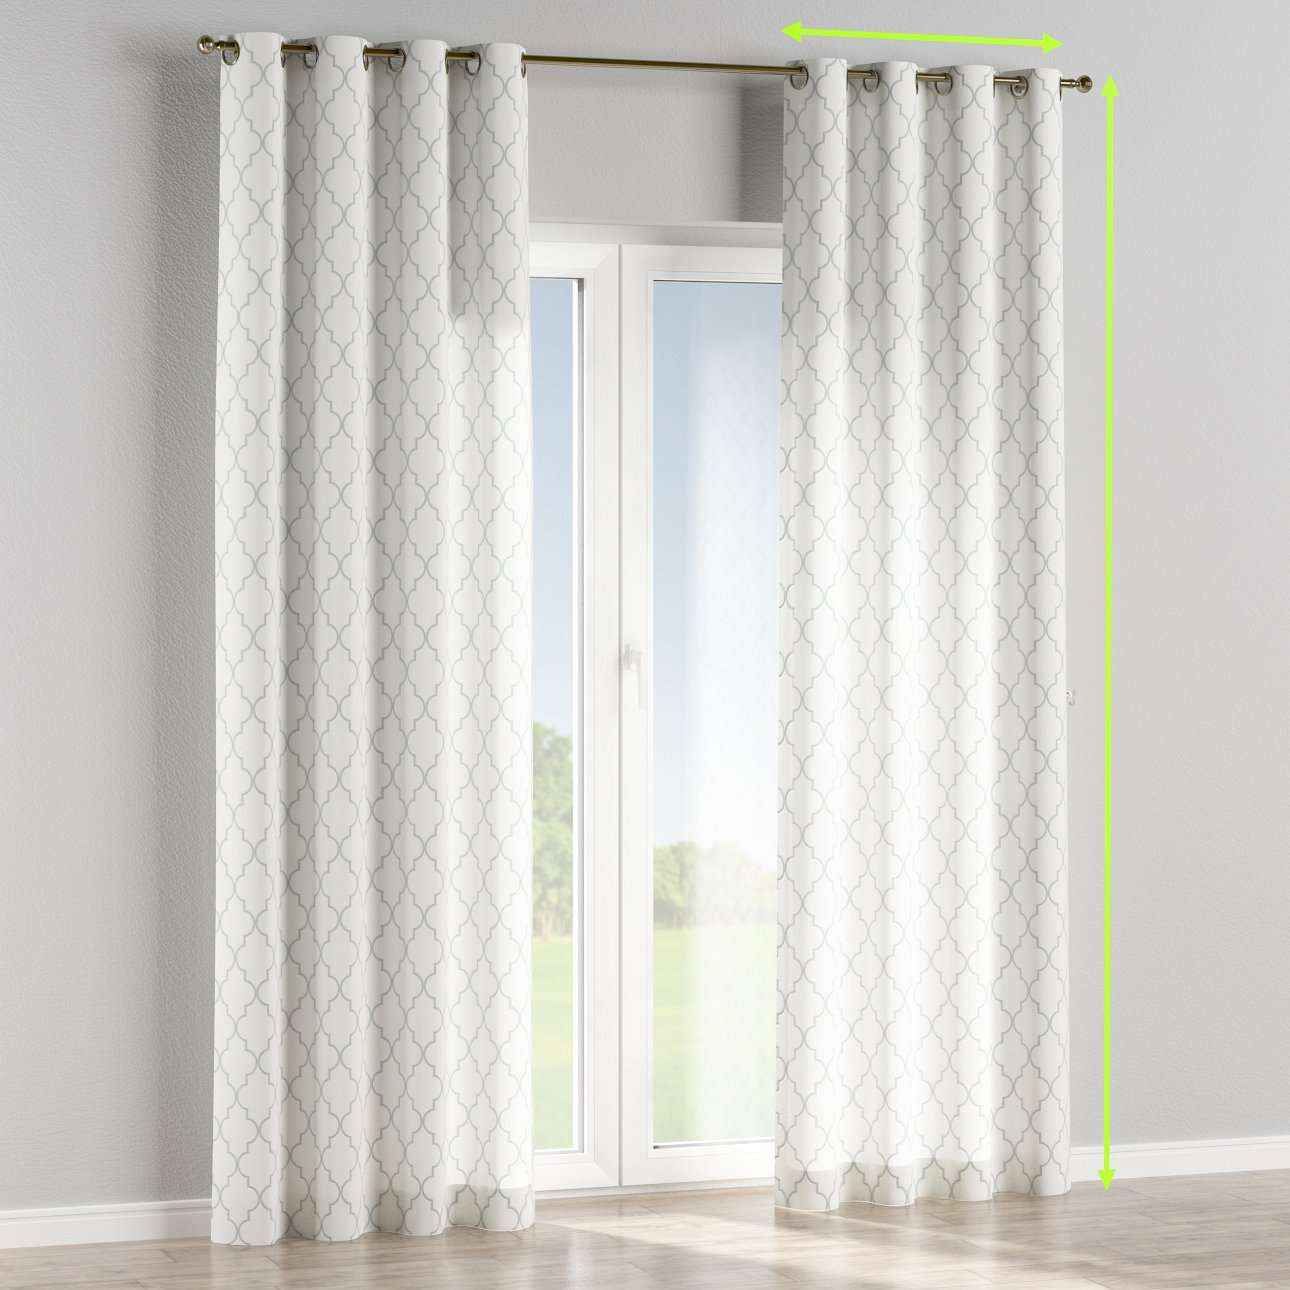 Eyelet lined curtains in collection Comics/Geometrical, fabric: 137-85